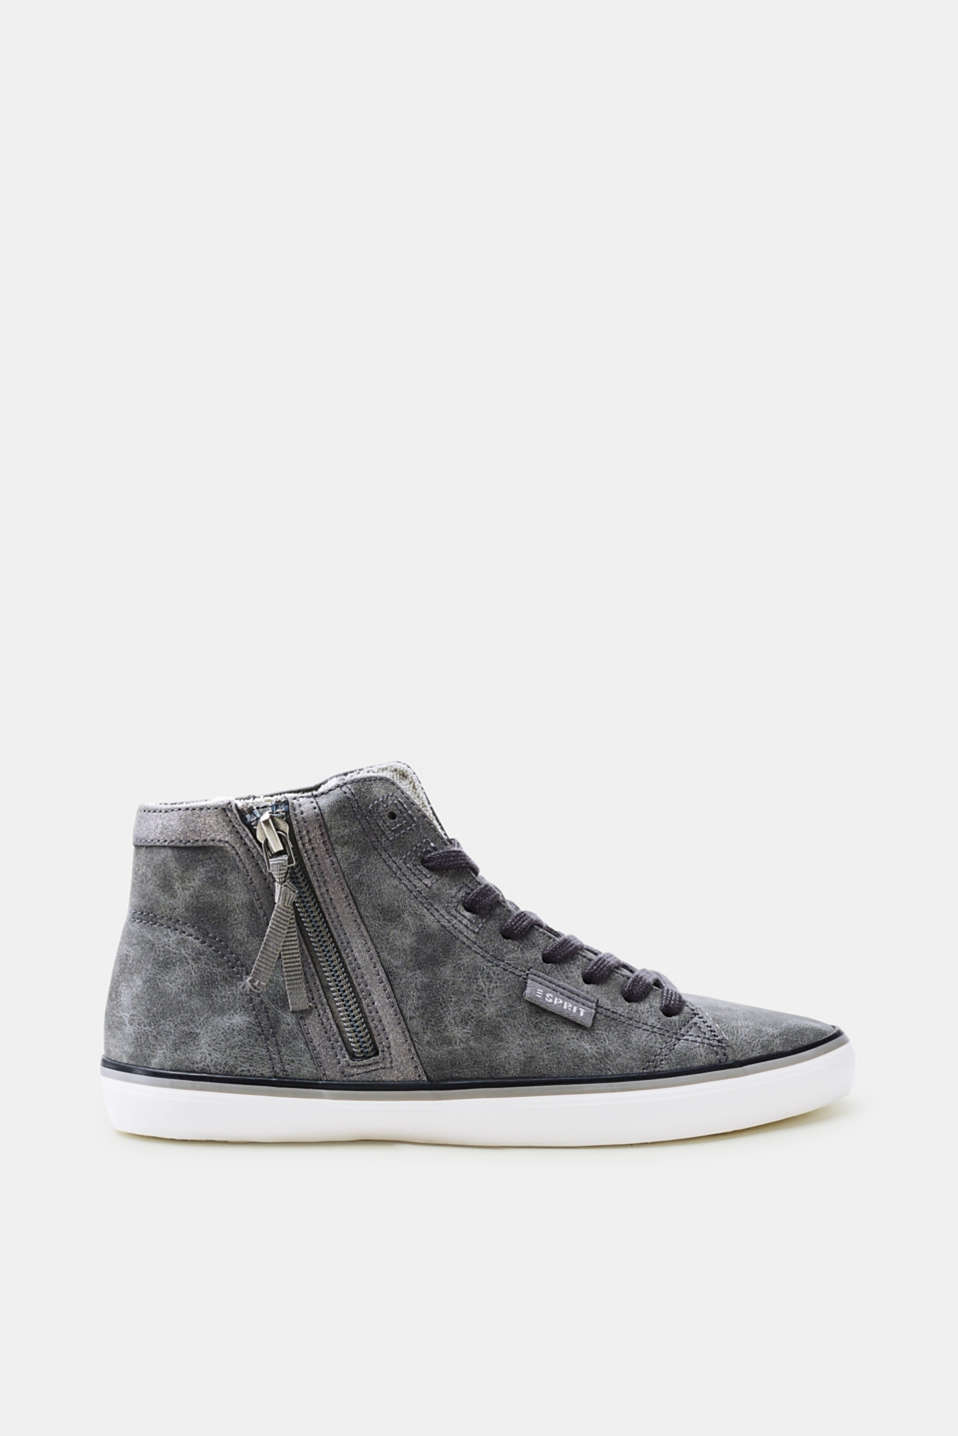 Esprit - High-top trainers in soft faux nubuck leather